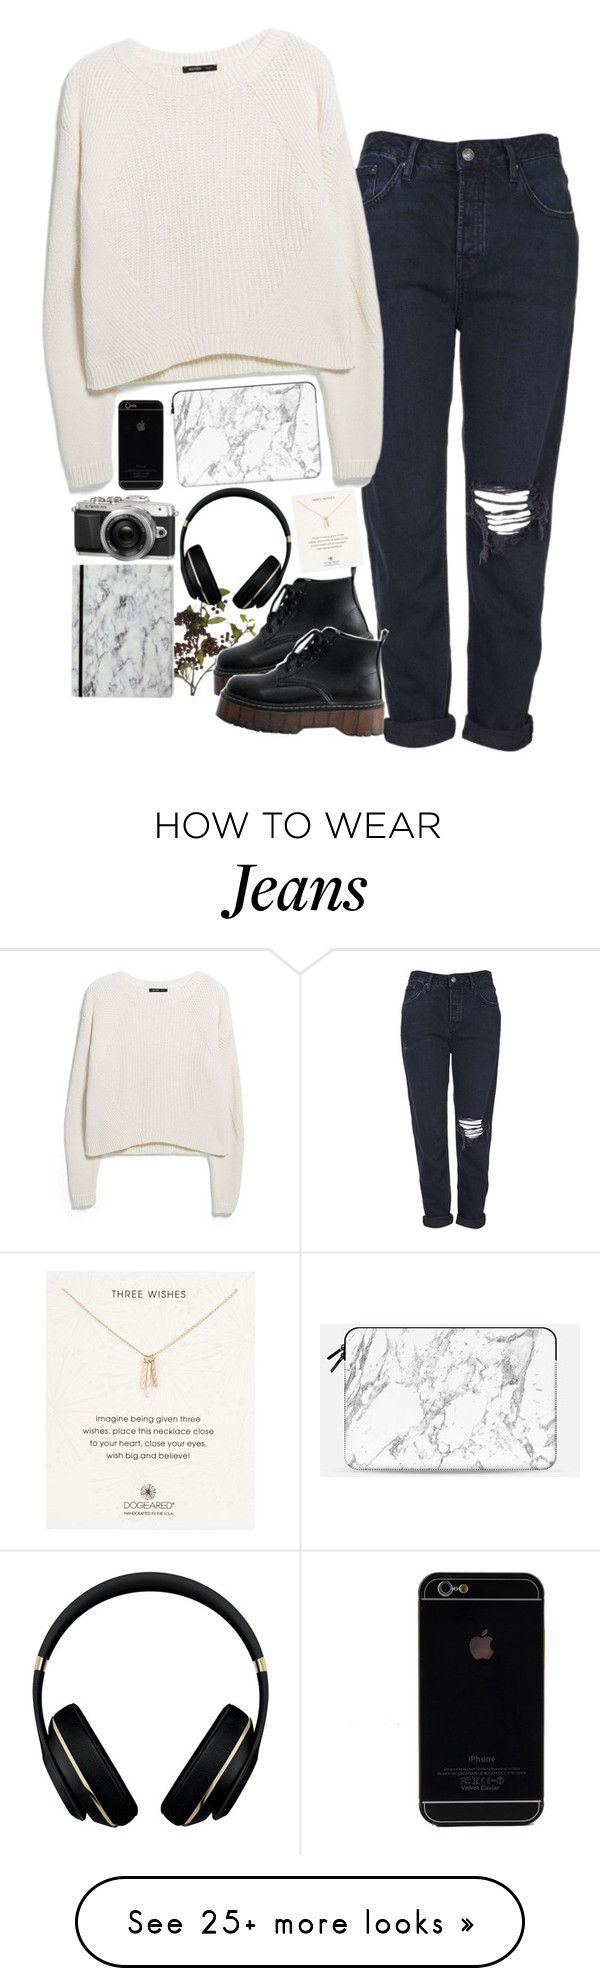 """""""CASETIFY 5"""" by sisistyle on Polyvore featuring OKA, Topshop, MANGO, Casetify, Dogeared, Alexander Wang and Retrò"""